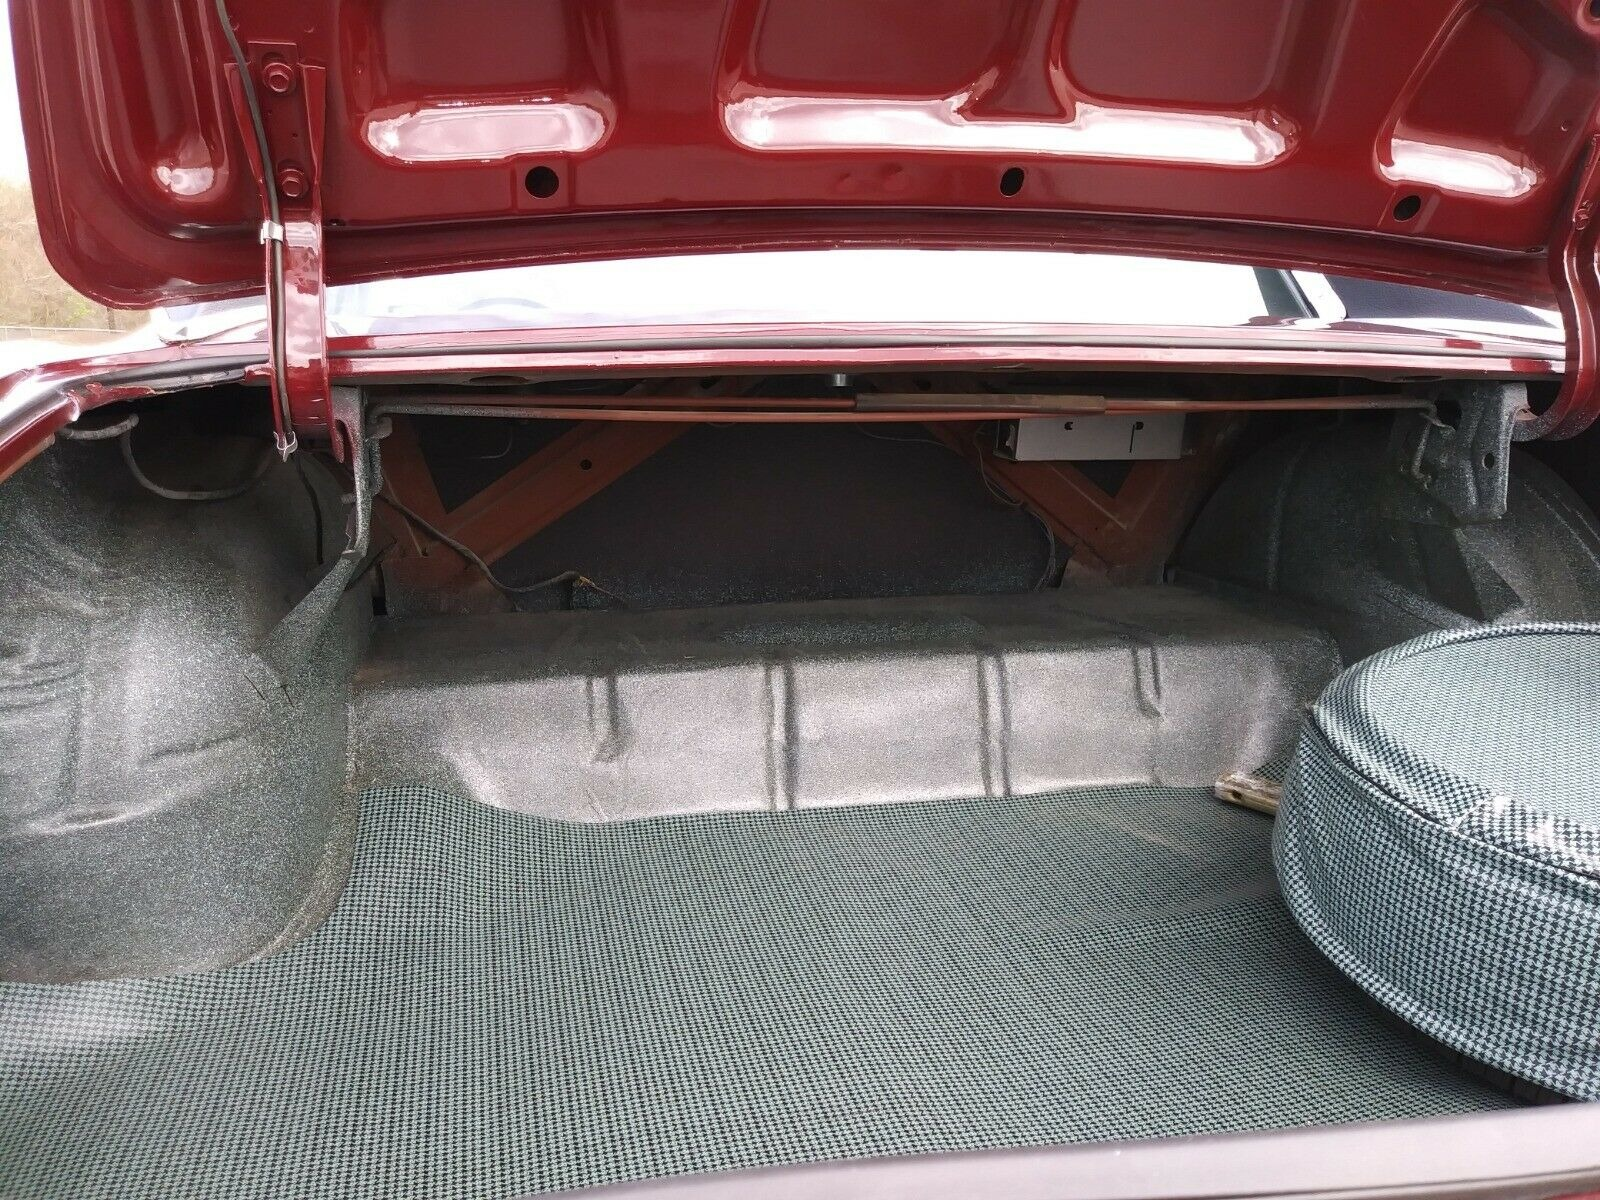 Used 1967 Pontiac GTO -242 CAR-NUMBERS MATCHING 400/400-HIS/HERS CONSOLE SHIFTING | Mundelein, IL